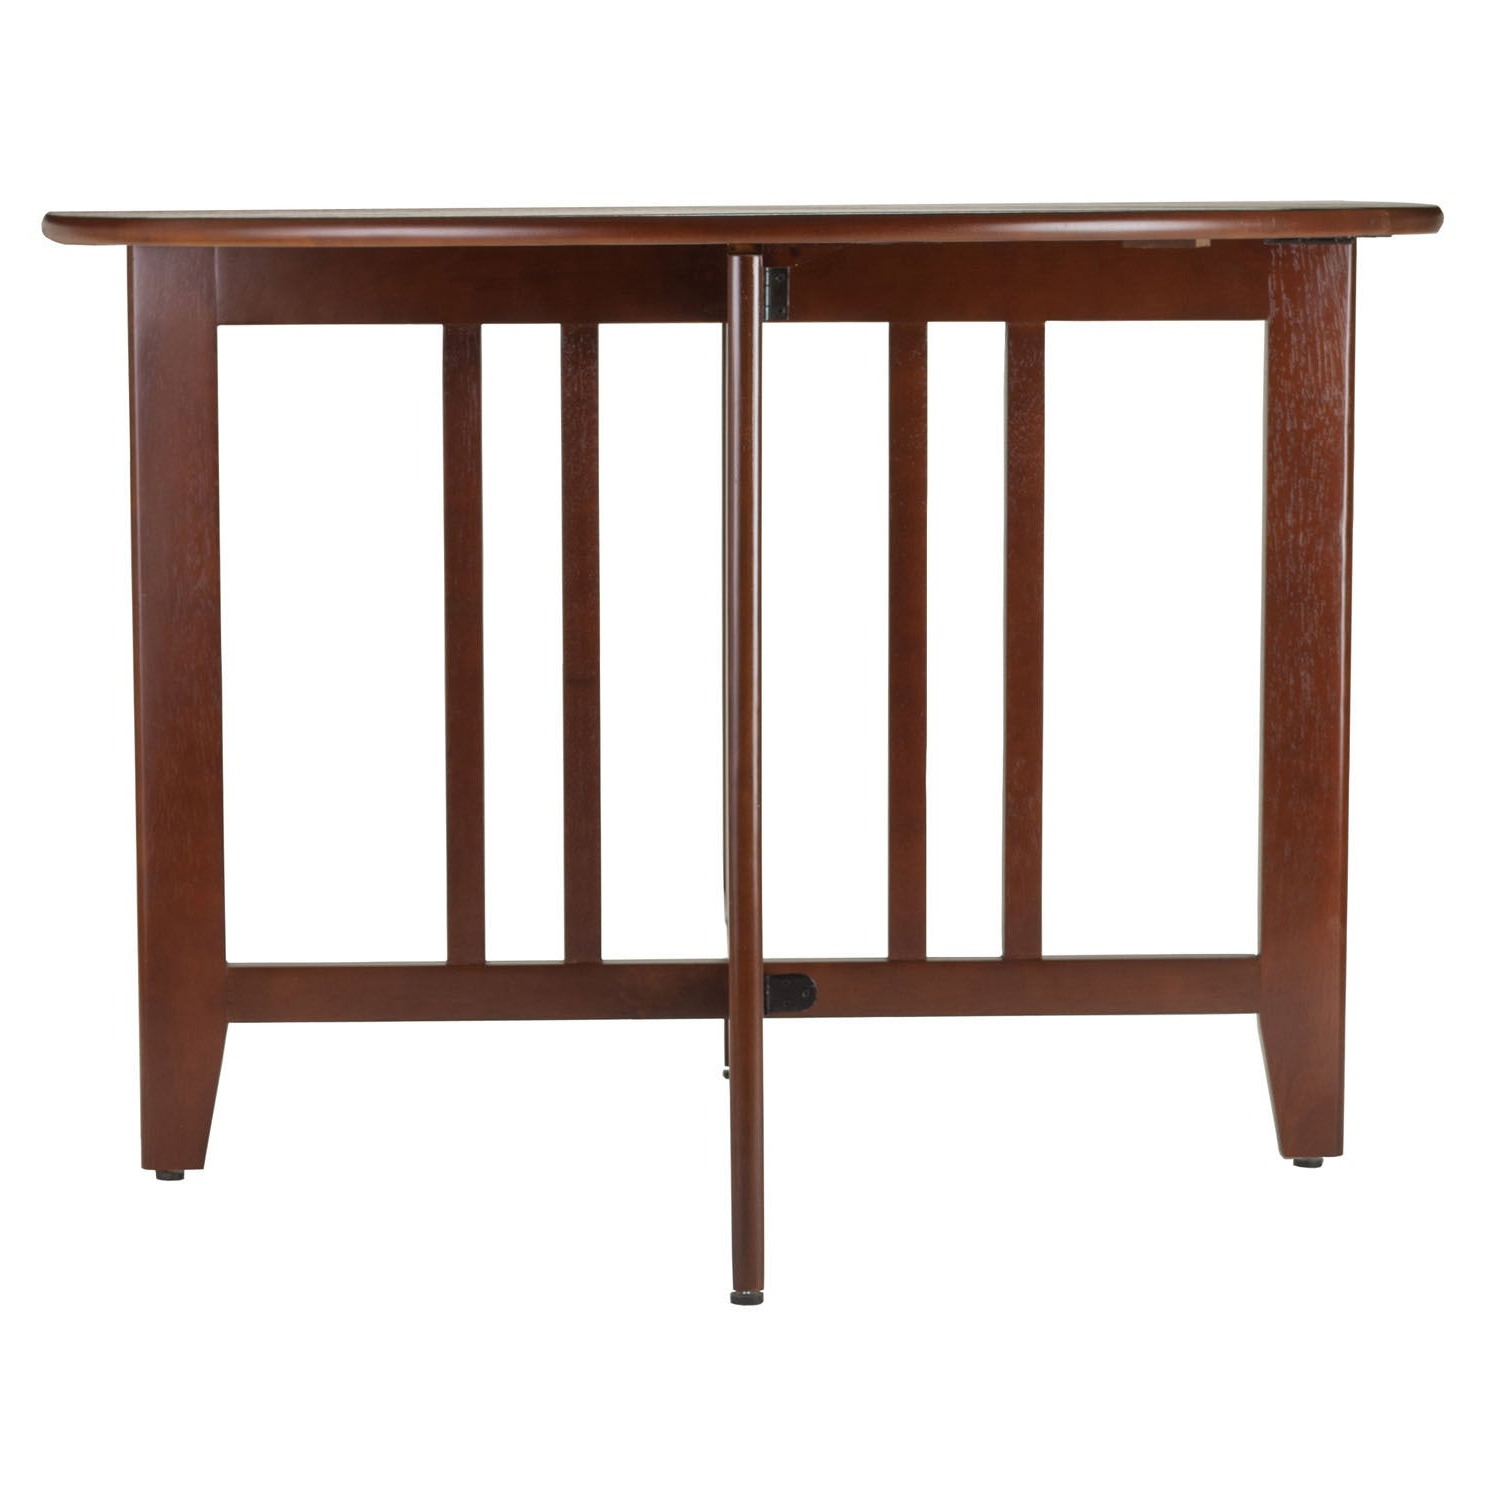 """Alamo Transitional 4 Seating Double Drop Leaf Round Casual Dining Tables In Well Known Alamo Double Drop Leaf Round 42"""" Table Mission – N/a (View 10 of 26)"""